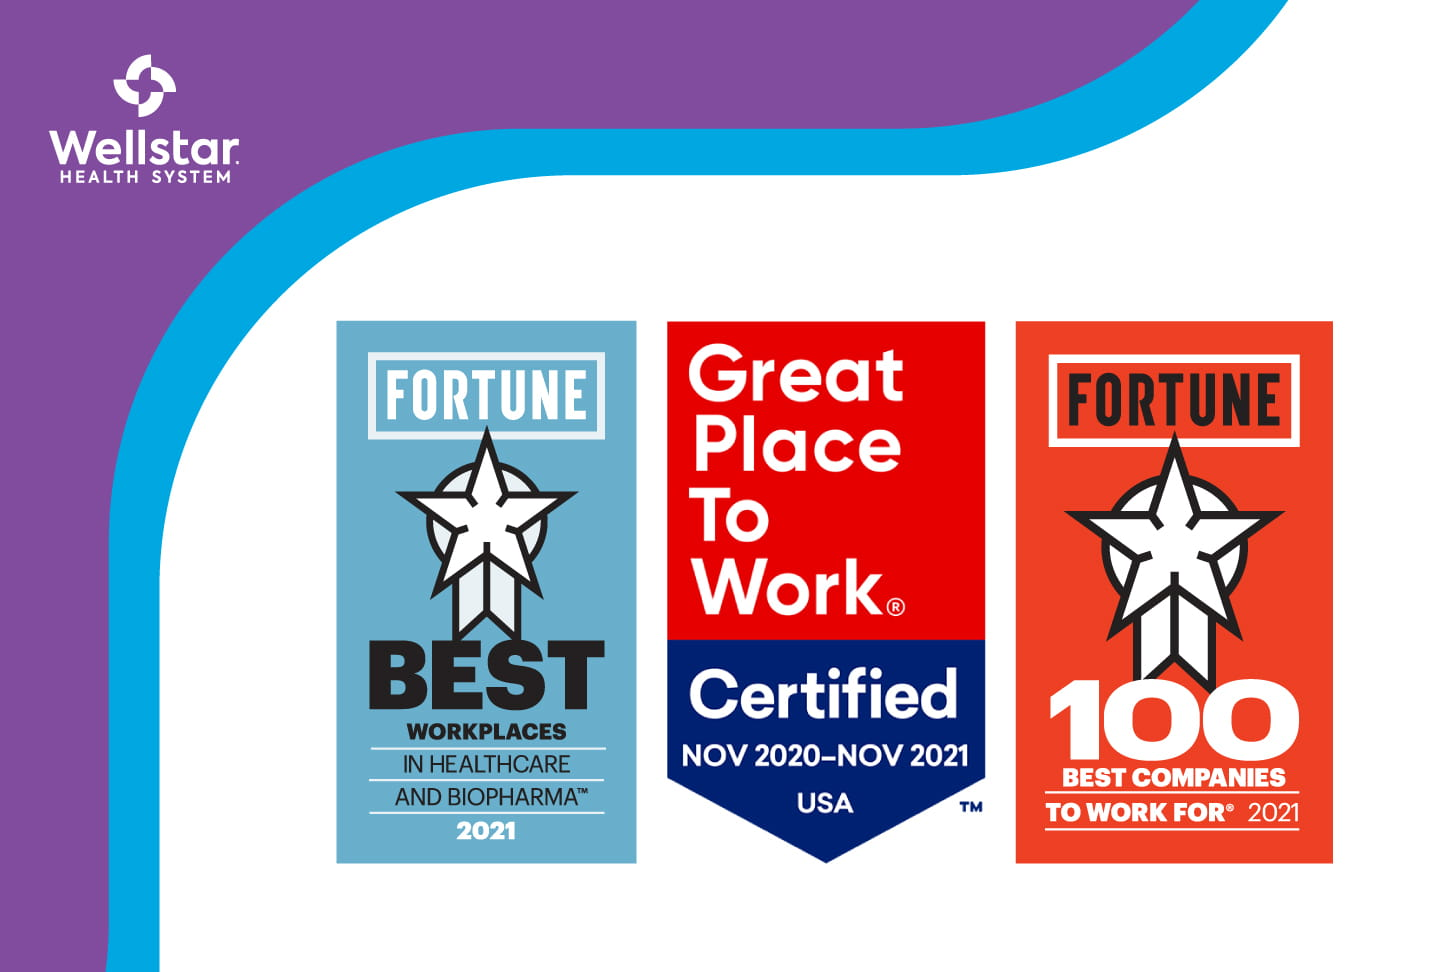 Wellstar Named Great Place To Work Image